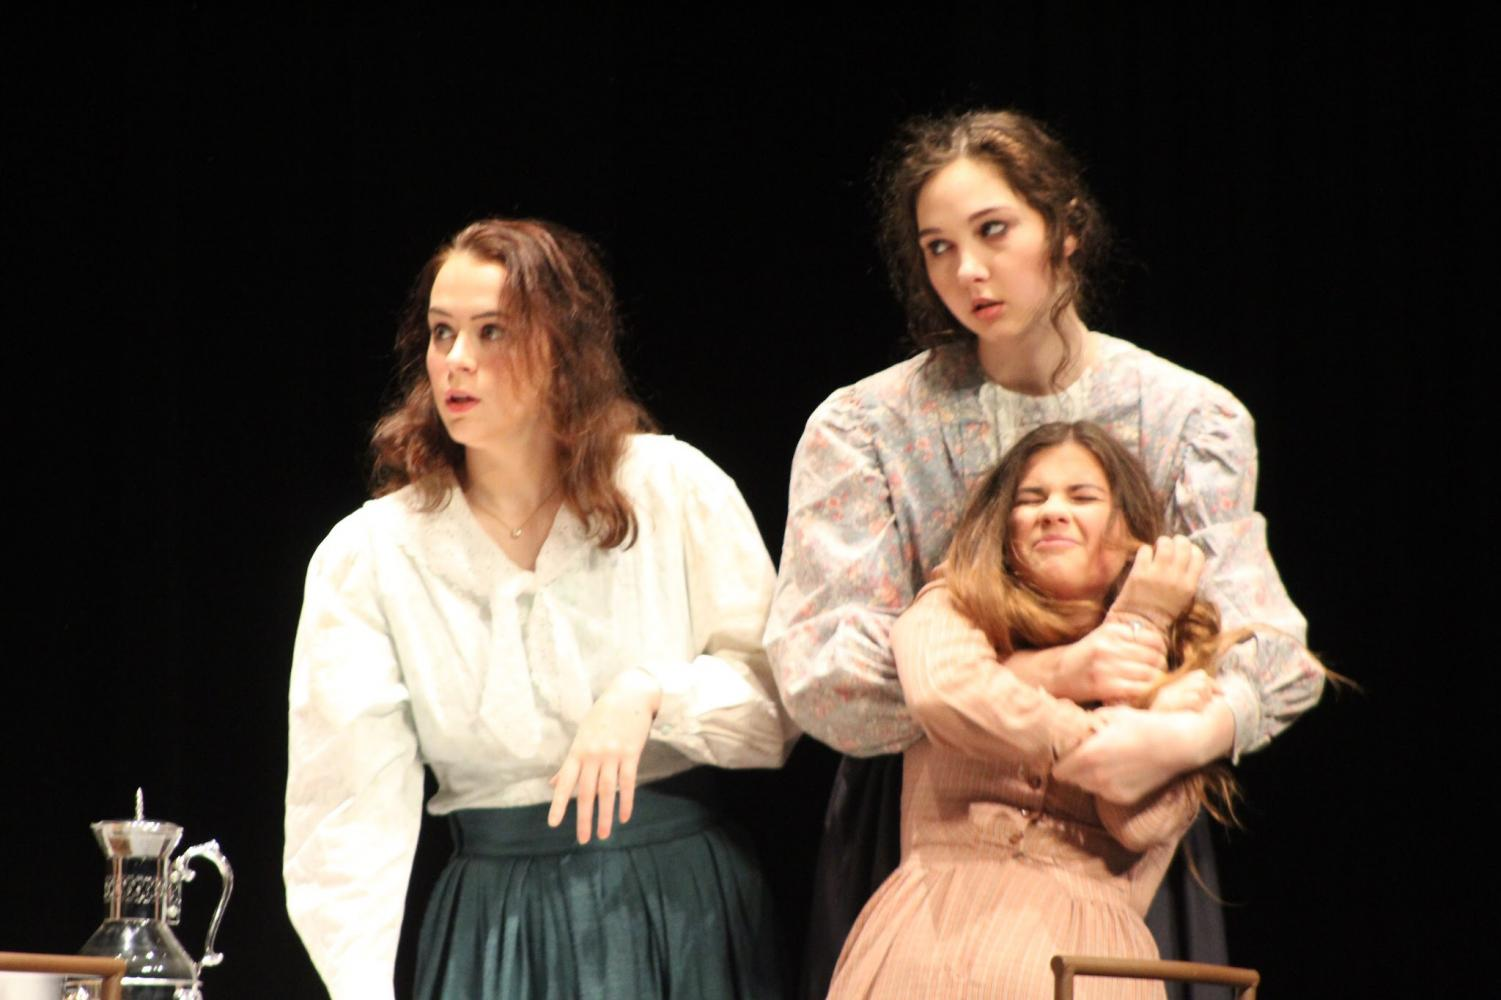 Students Amber Neaman, Katelyn Grubb, and Alyssa Riha acted in a scene together, in which they portrayed Kate Keller, Anne Sullivan, and Helen Keller.